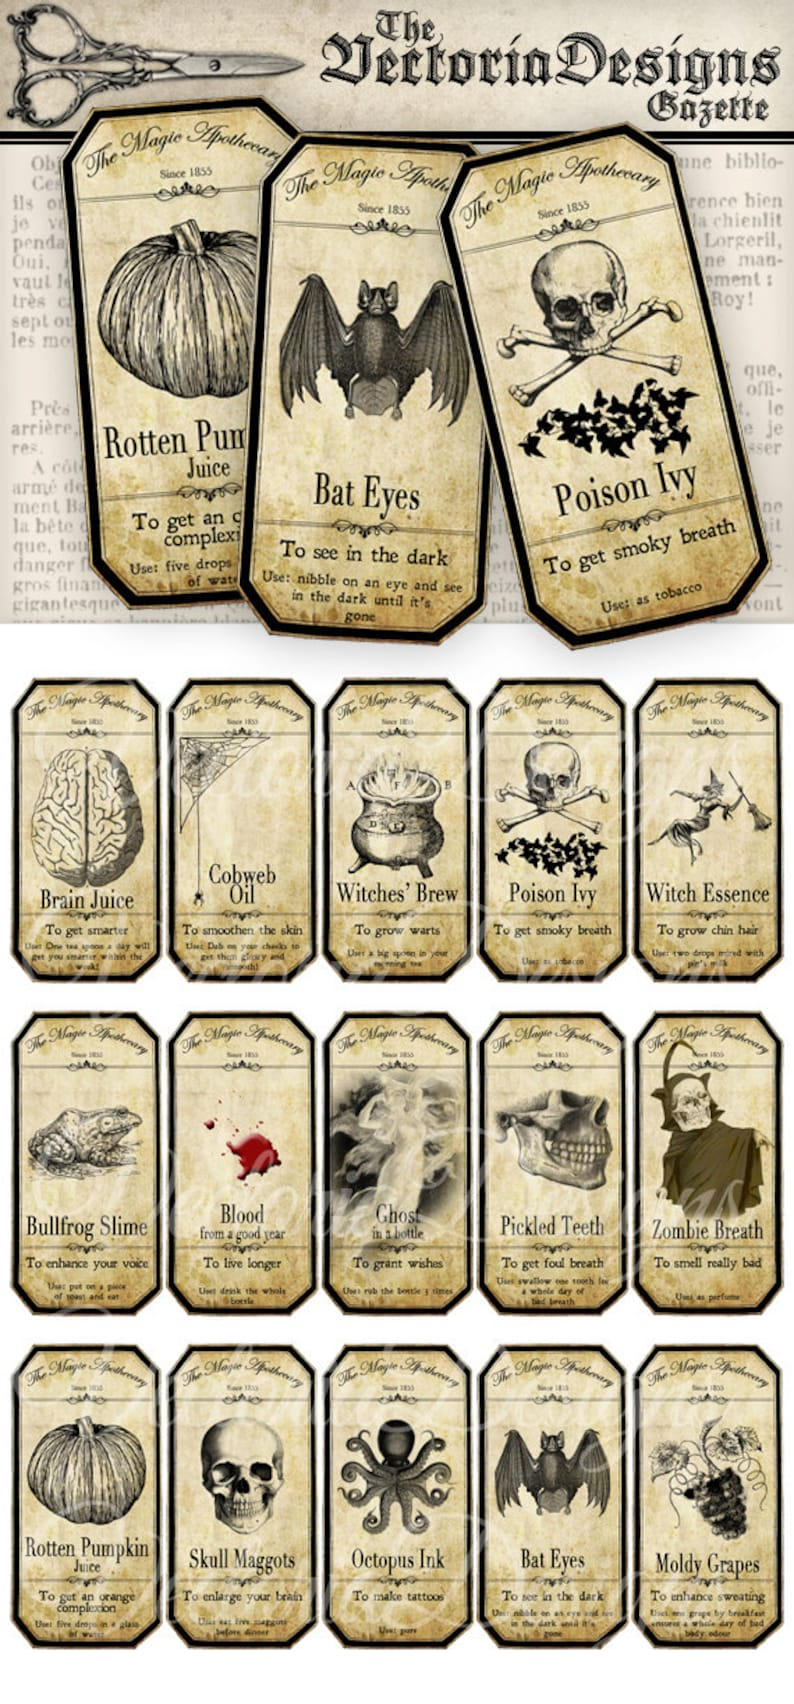 graphic about Free Printable Apothecary Jar Labels identify Printable Tiny Halloween Apothecary Jars Labels Tags Producing sbooking instantaneous down load printable photos electronic collage sheet - VD0125